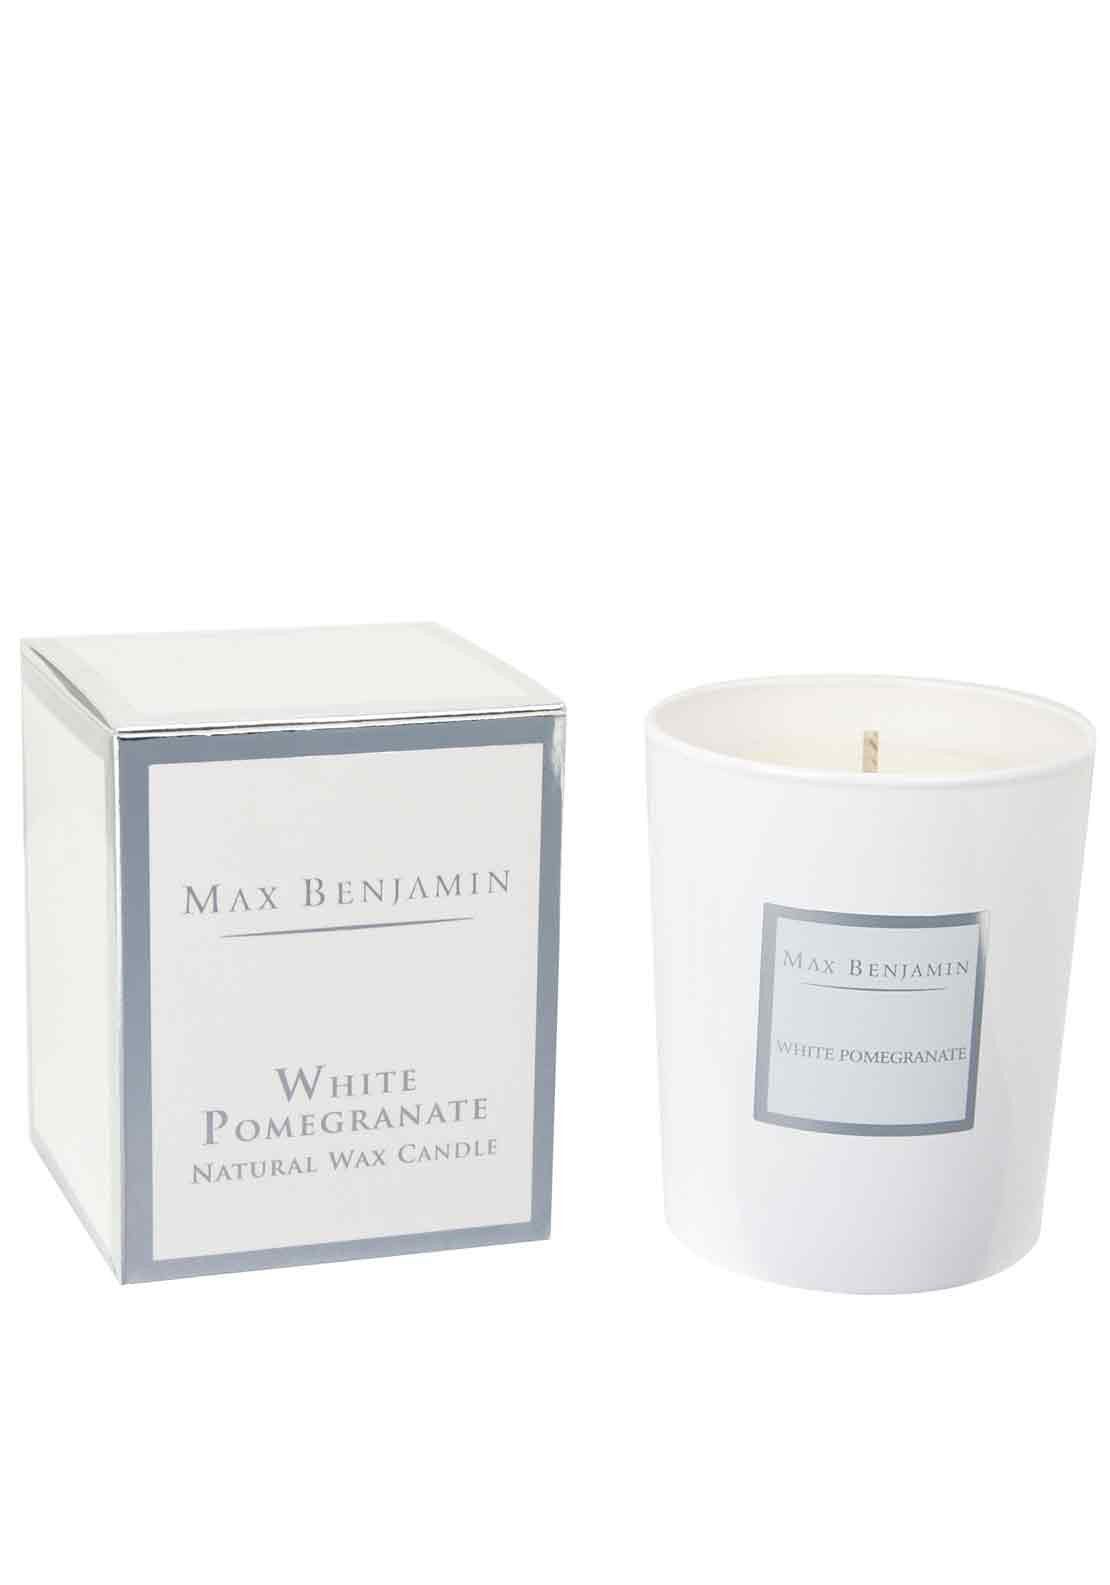 Max Benjamin White Pomegranate Scented Candle